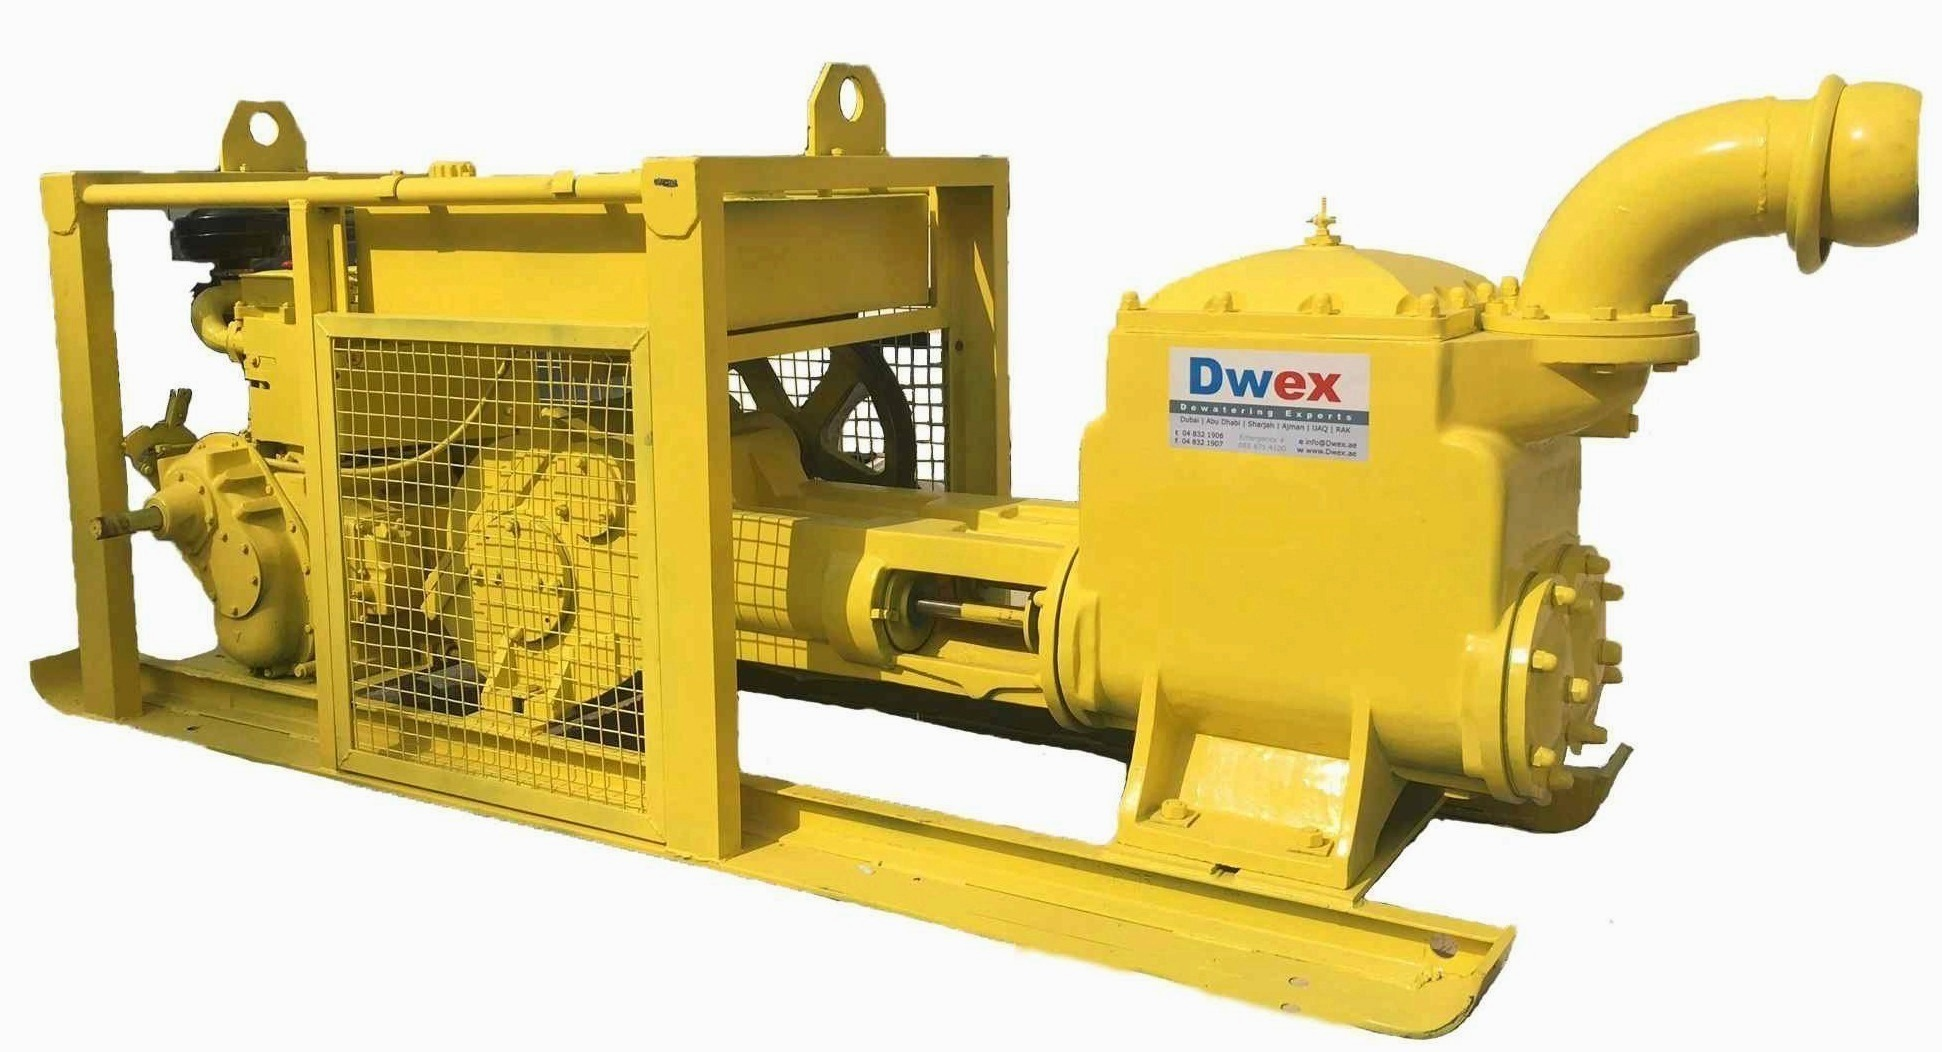 Dwex Dewatering Experts | Dewatering Pump | Dewatering For Companies in UAE | Dubai | AbuDhabi | RAK